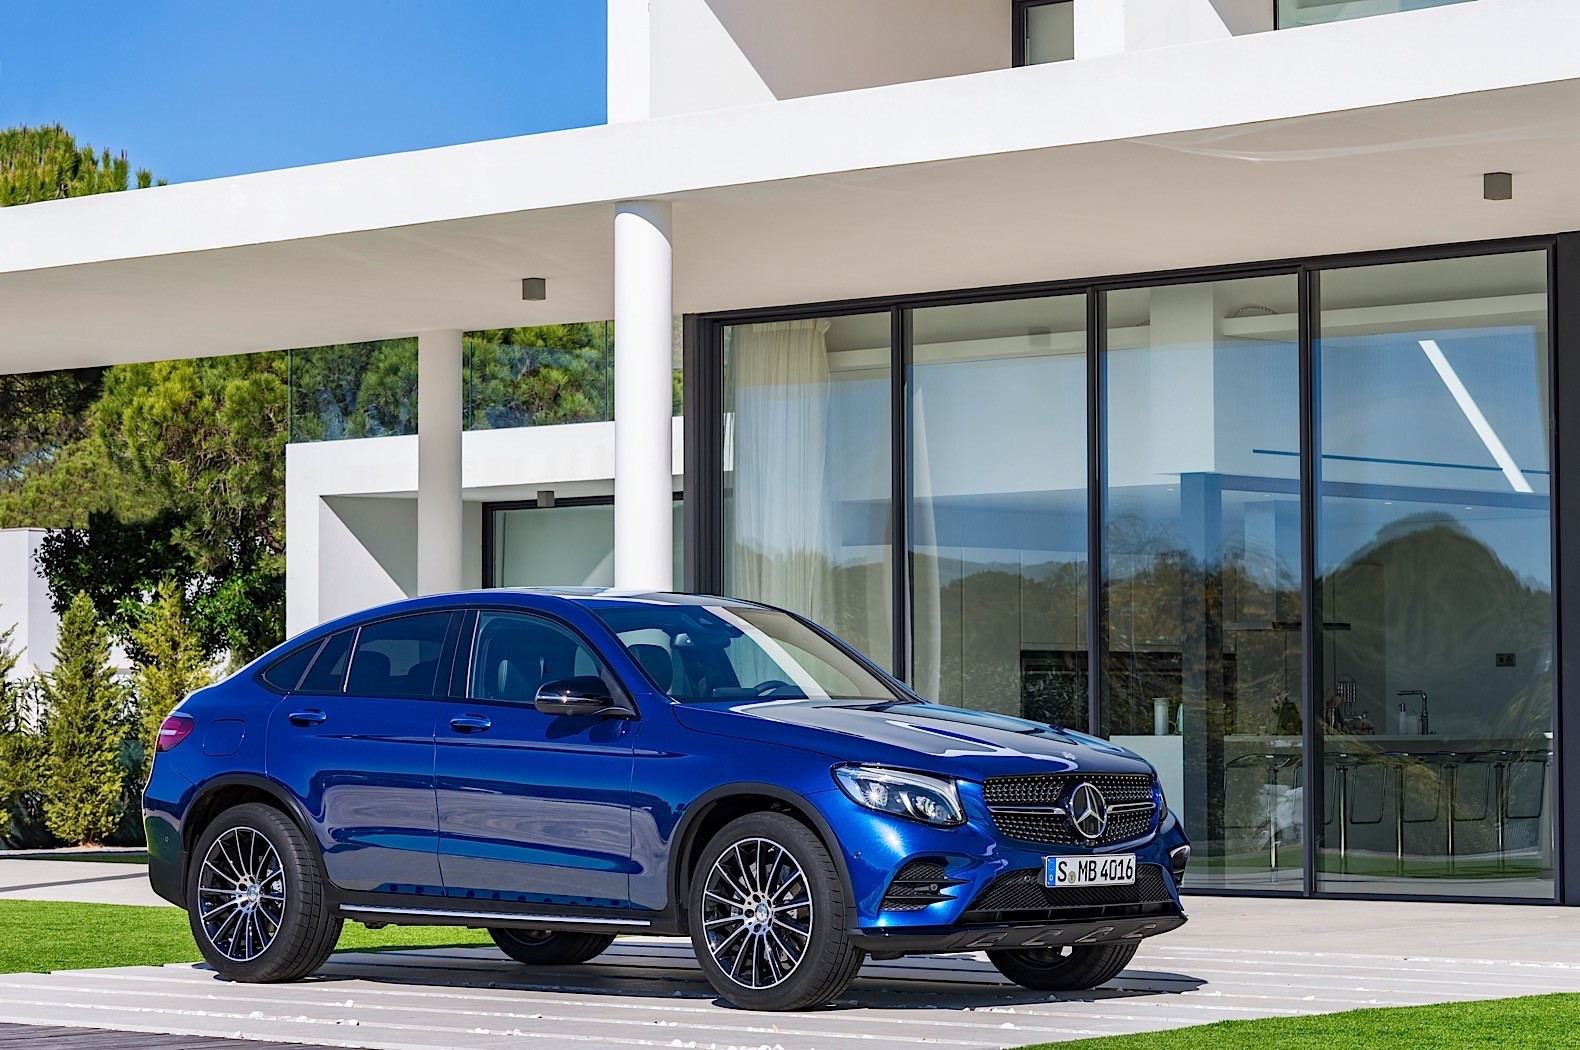 2017 mercedes benz glc coupe is out for bmw x4 blood in for Mercedes benz of new york